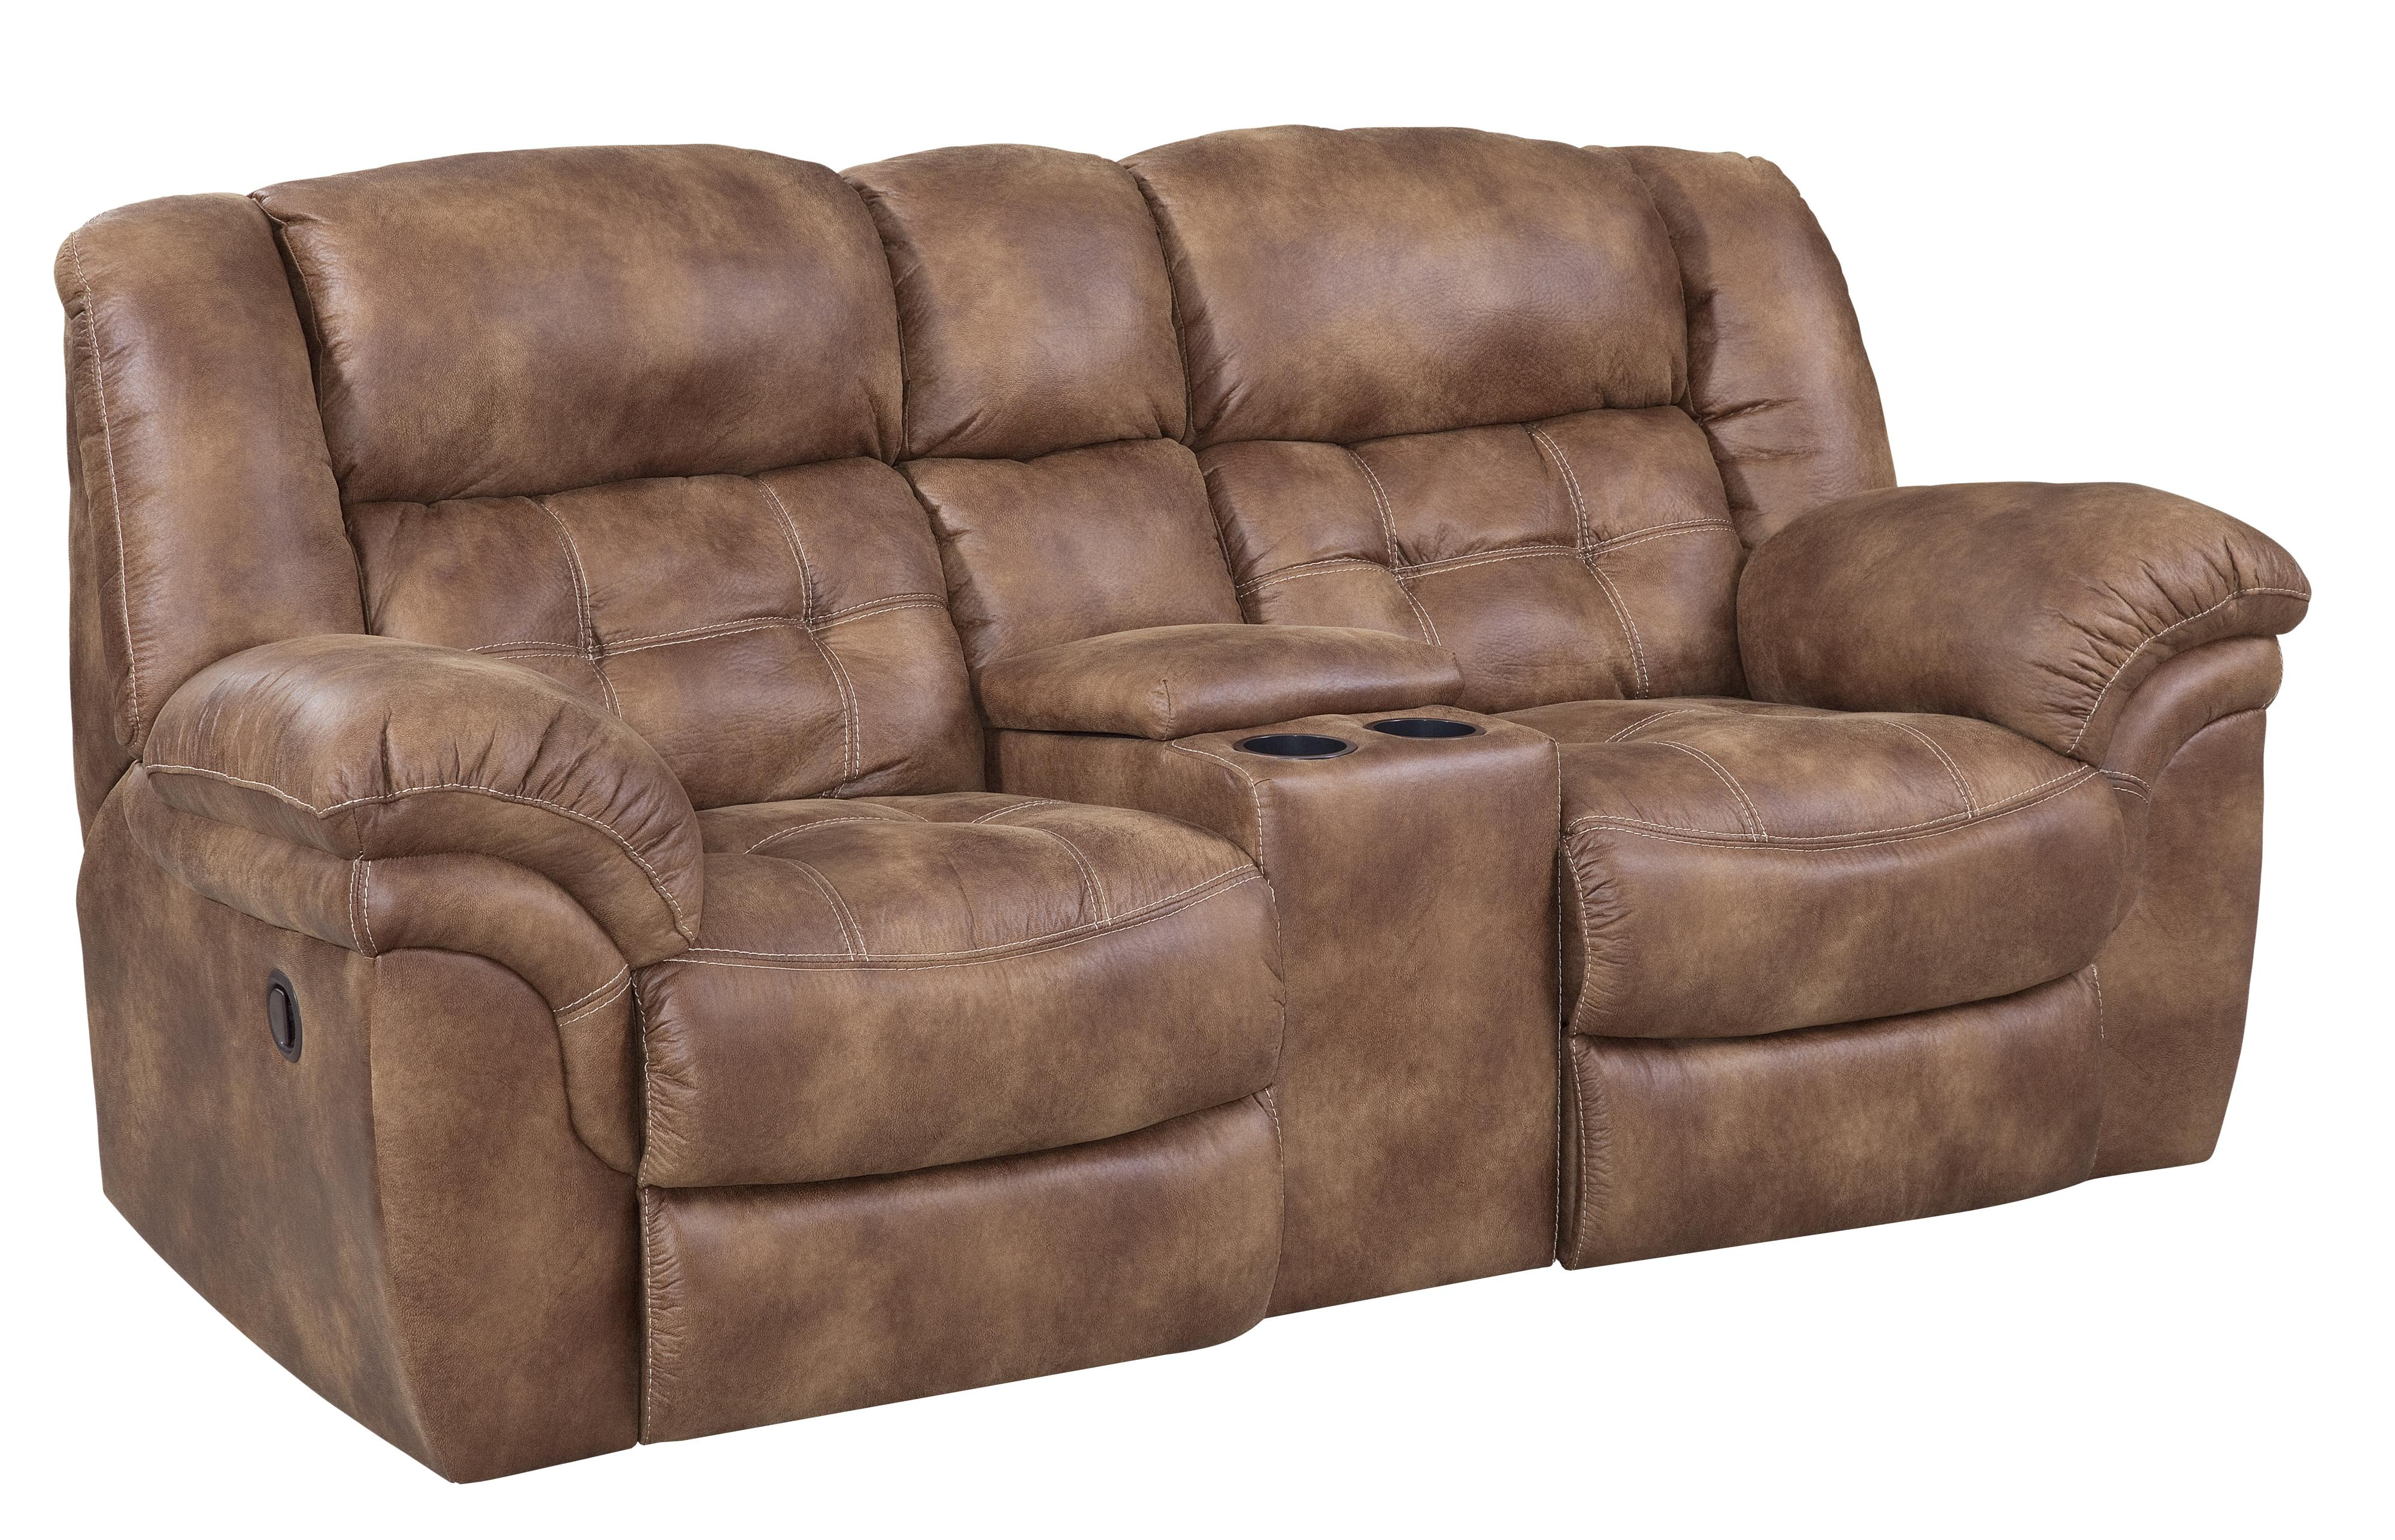 Casual Power Reclining Console Loveseat With Cupholders By